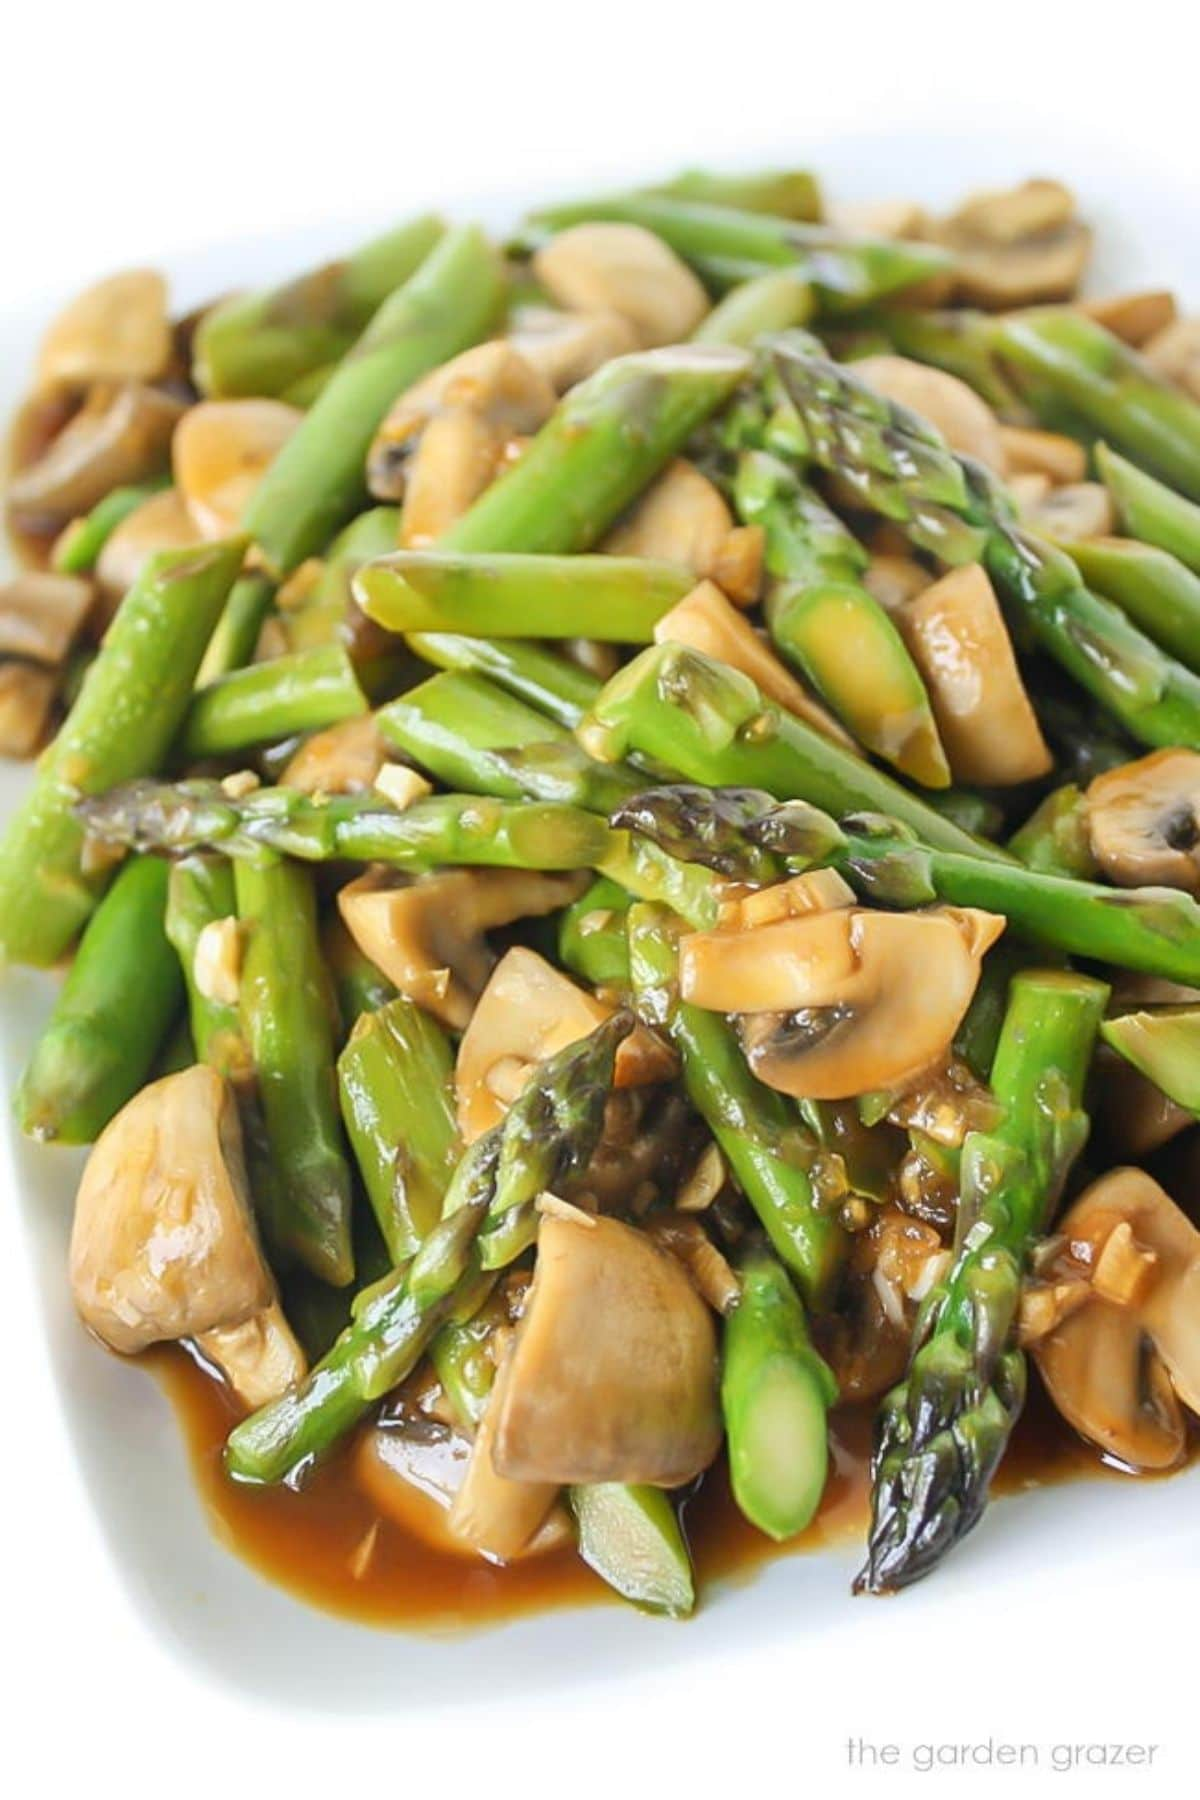 Chicken stir fry with asparagus on white plate